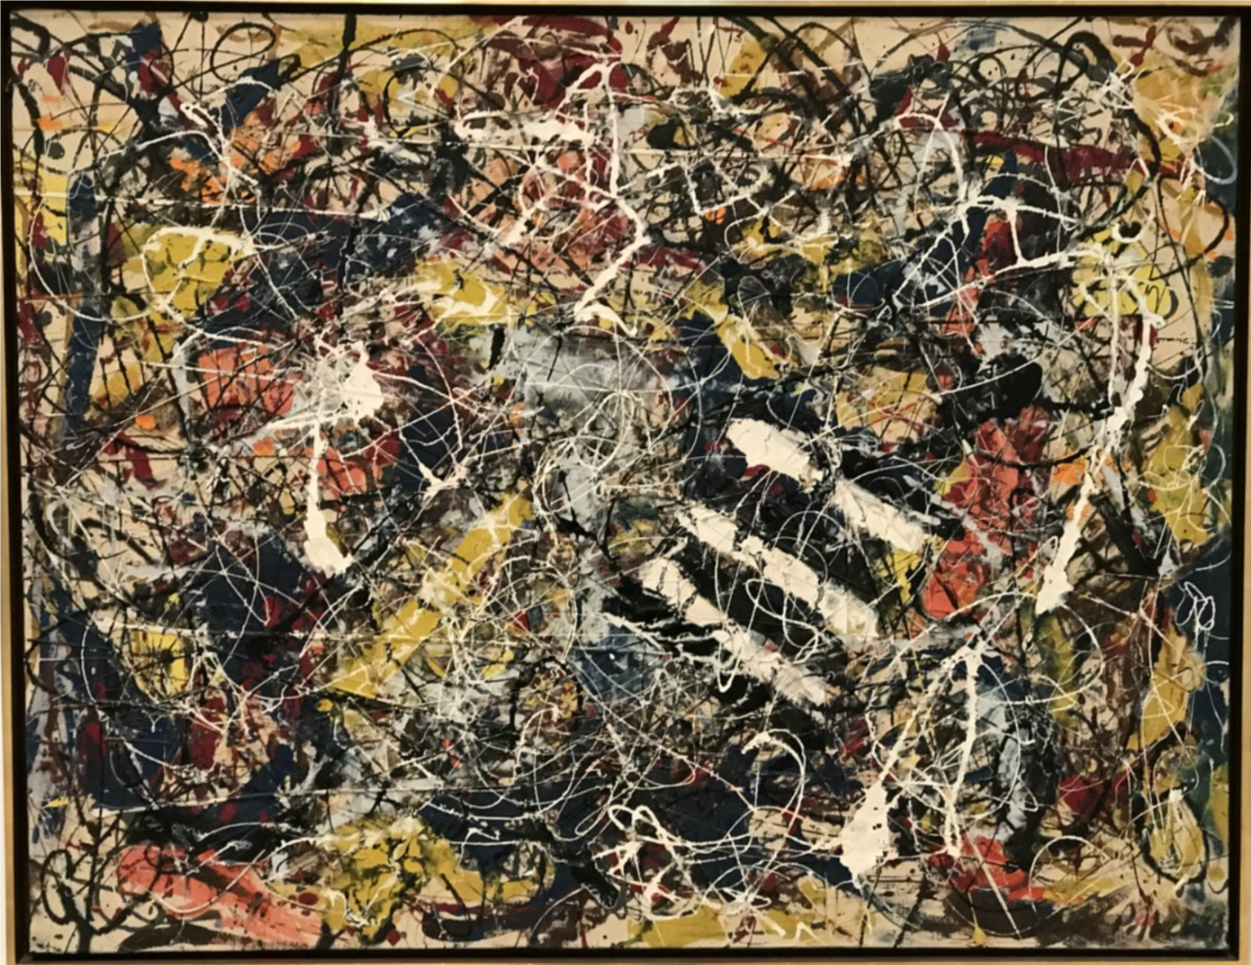 Paul Jackson Pollock (January 28, 1912 – August 11, 1956) was an American painter and a major figure in the abstract expressionist movement.   He was well known for his unique style of drip painting.   During his lifetime, Pollock enjoyed considerable fame and notoriety; he was a major artist of his generation.   Regarded as reclusive, he had a volatile personality, and struggled with alcoholism for most of his life.   In 1945, he married the artist Lee Krasner, who became an important influence on his career and on his legacy.